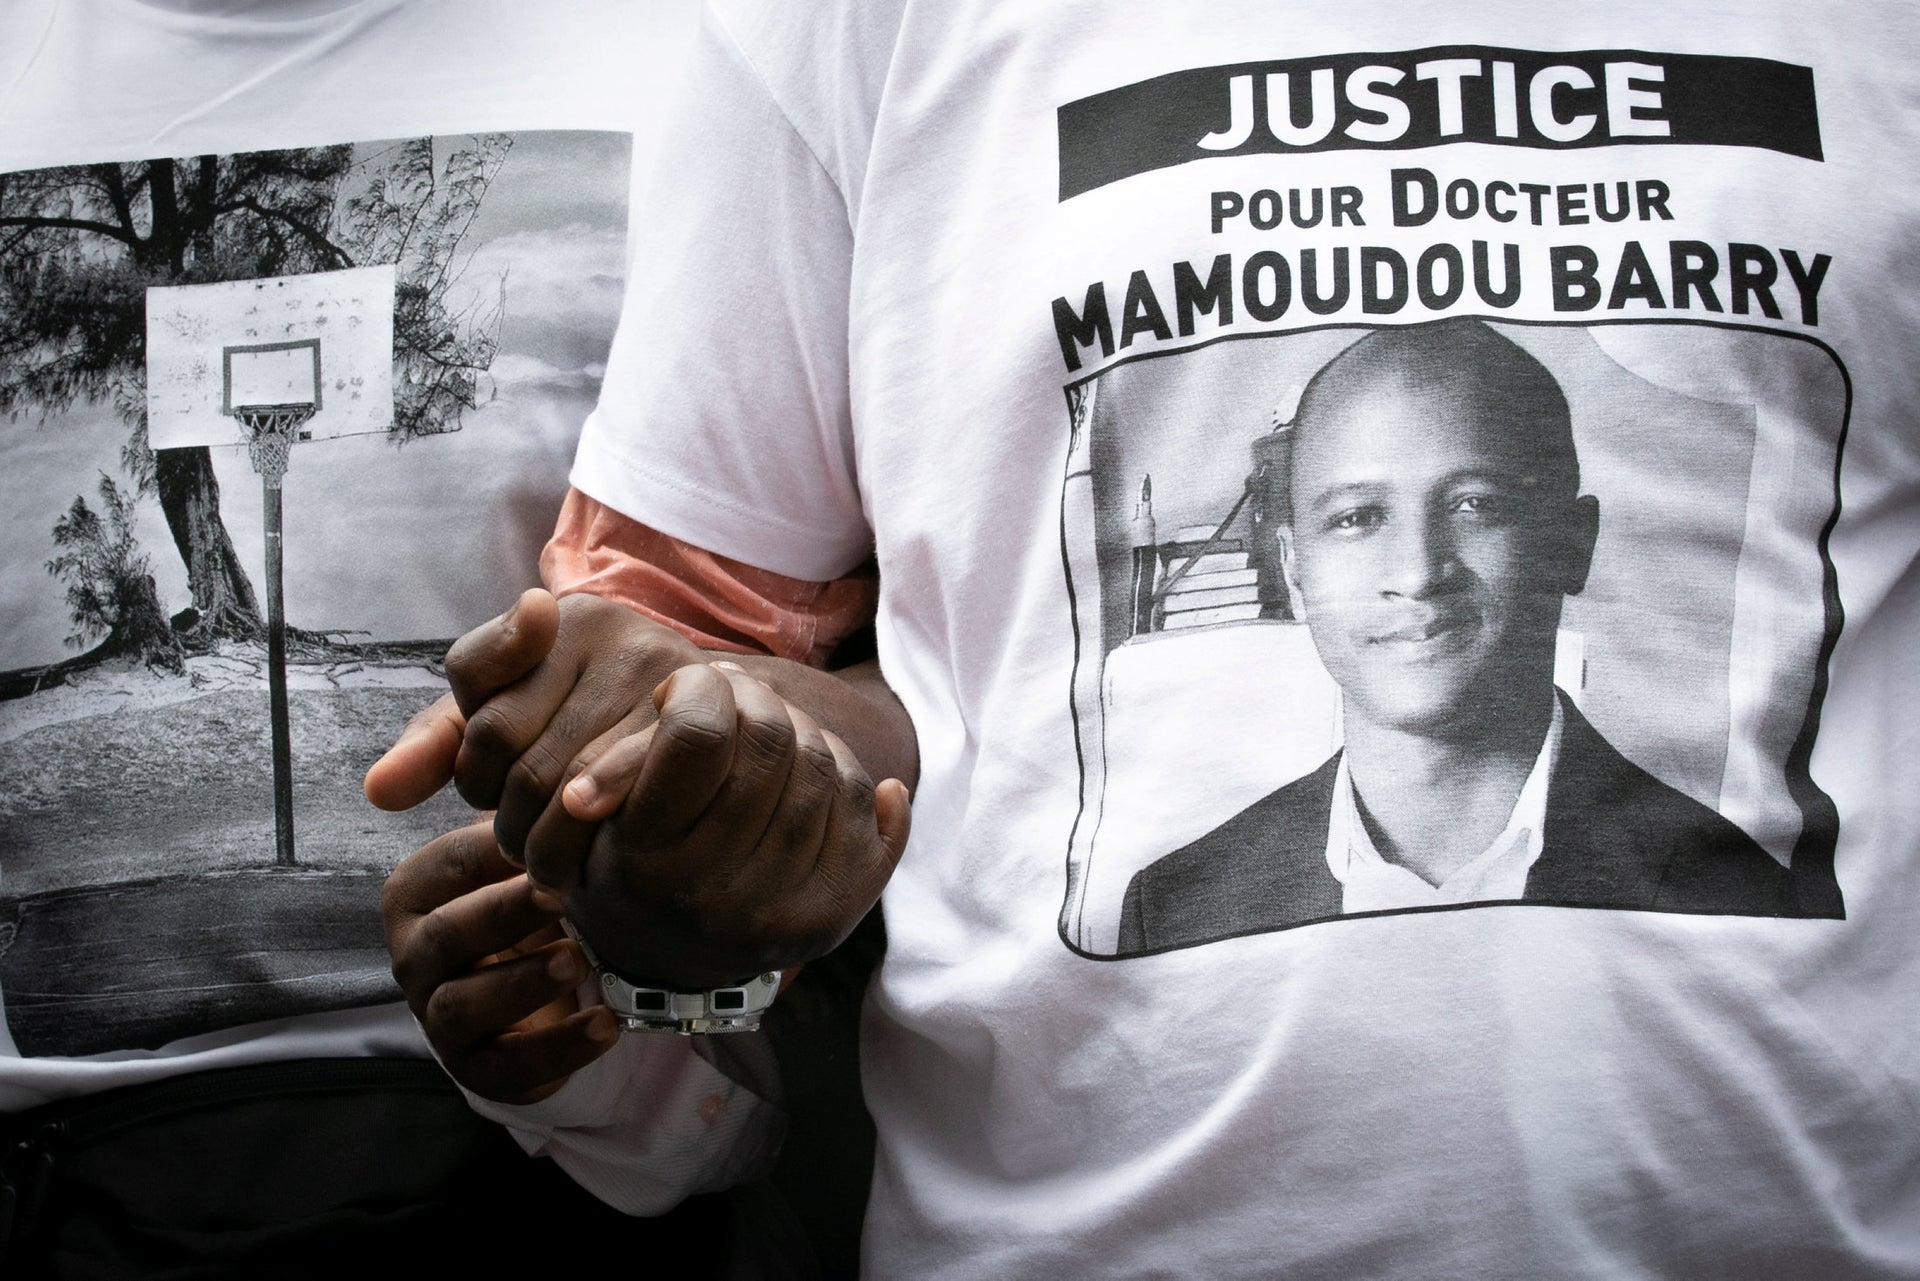 """People wearing shirts reading """"Justice for Dr. Mamoudou Barry"""" hold hands as they take part in a white march in Rouen on July 26, 2019 in hommage to Mamoudou Barry, a young Guinean teacher and researcher killed the previous week after a """"racist"""" assault, according to his family."""